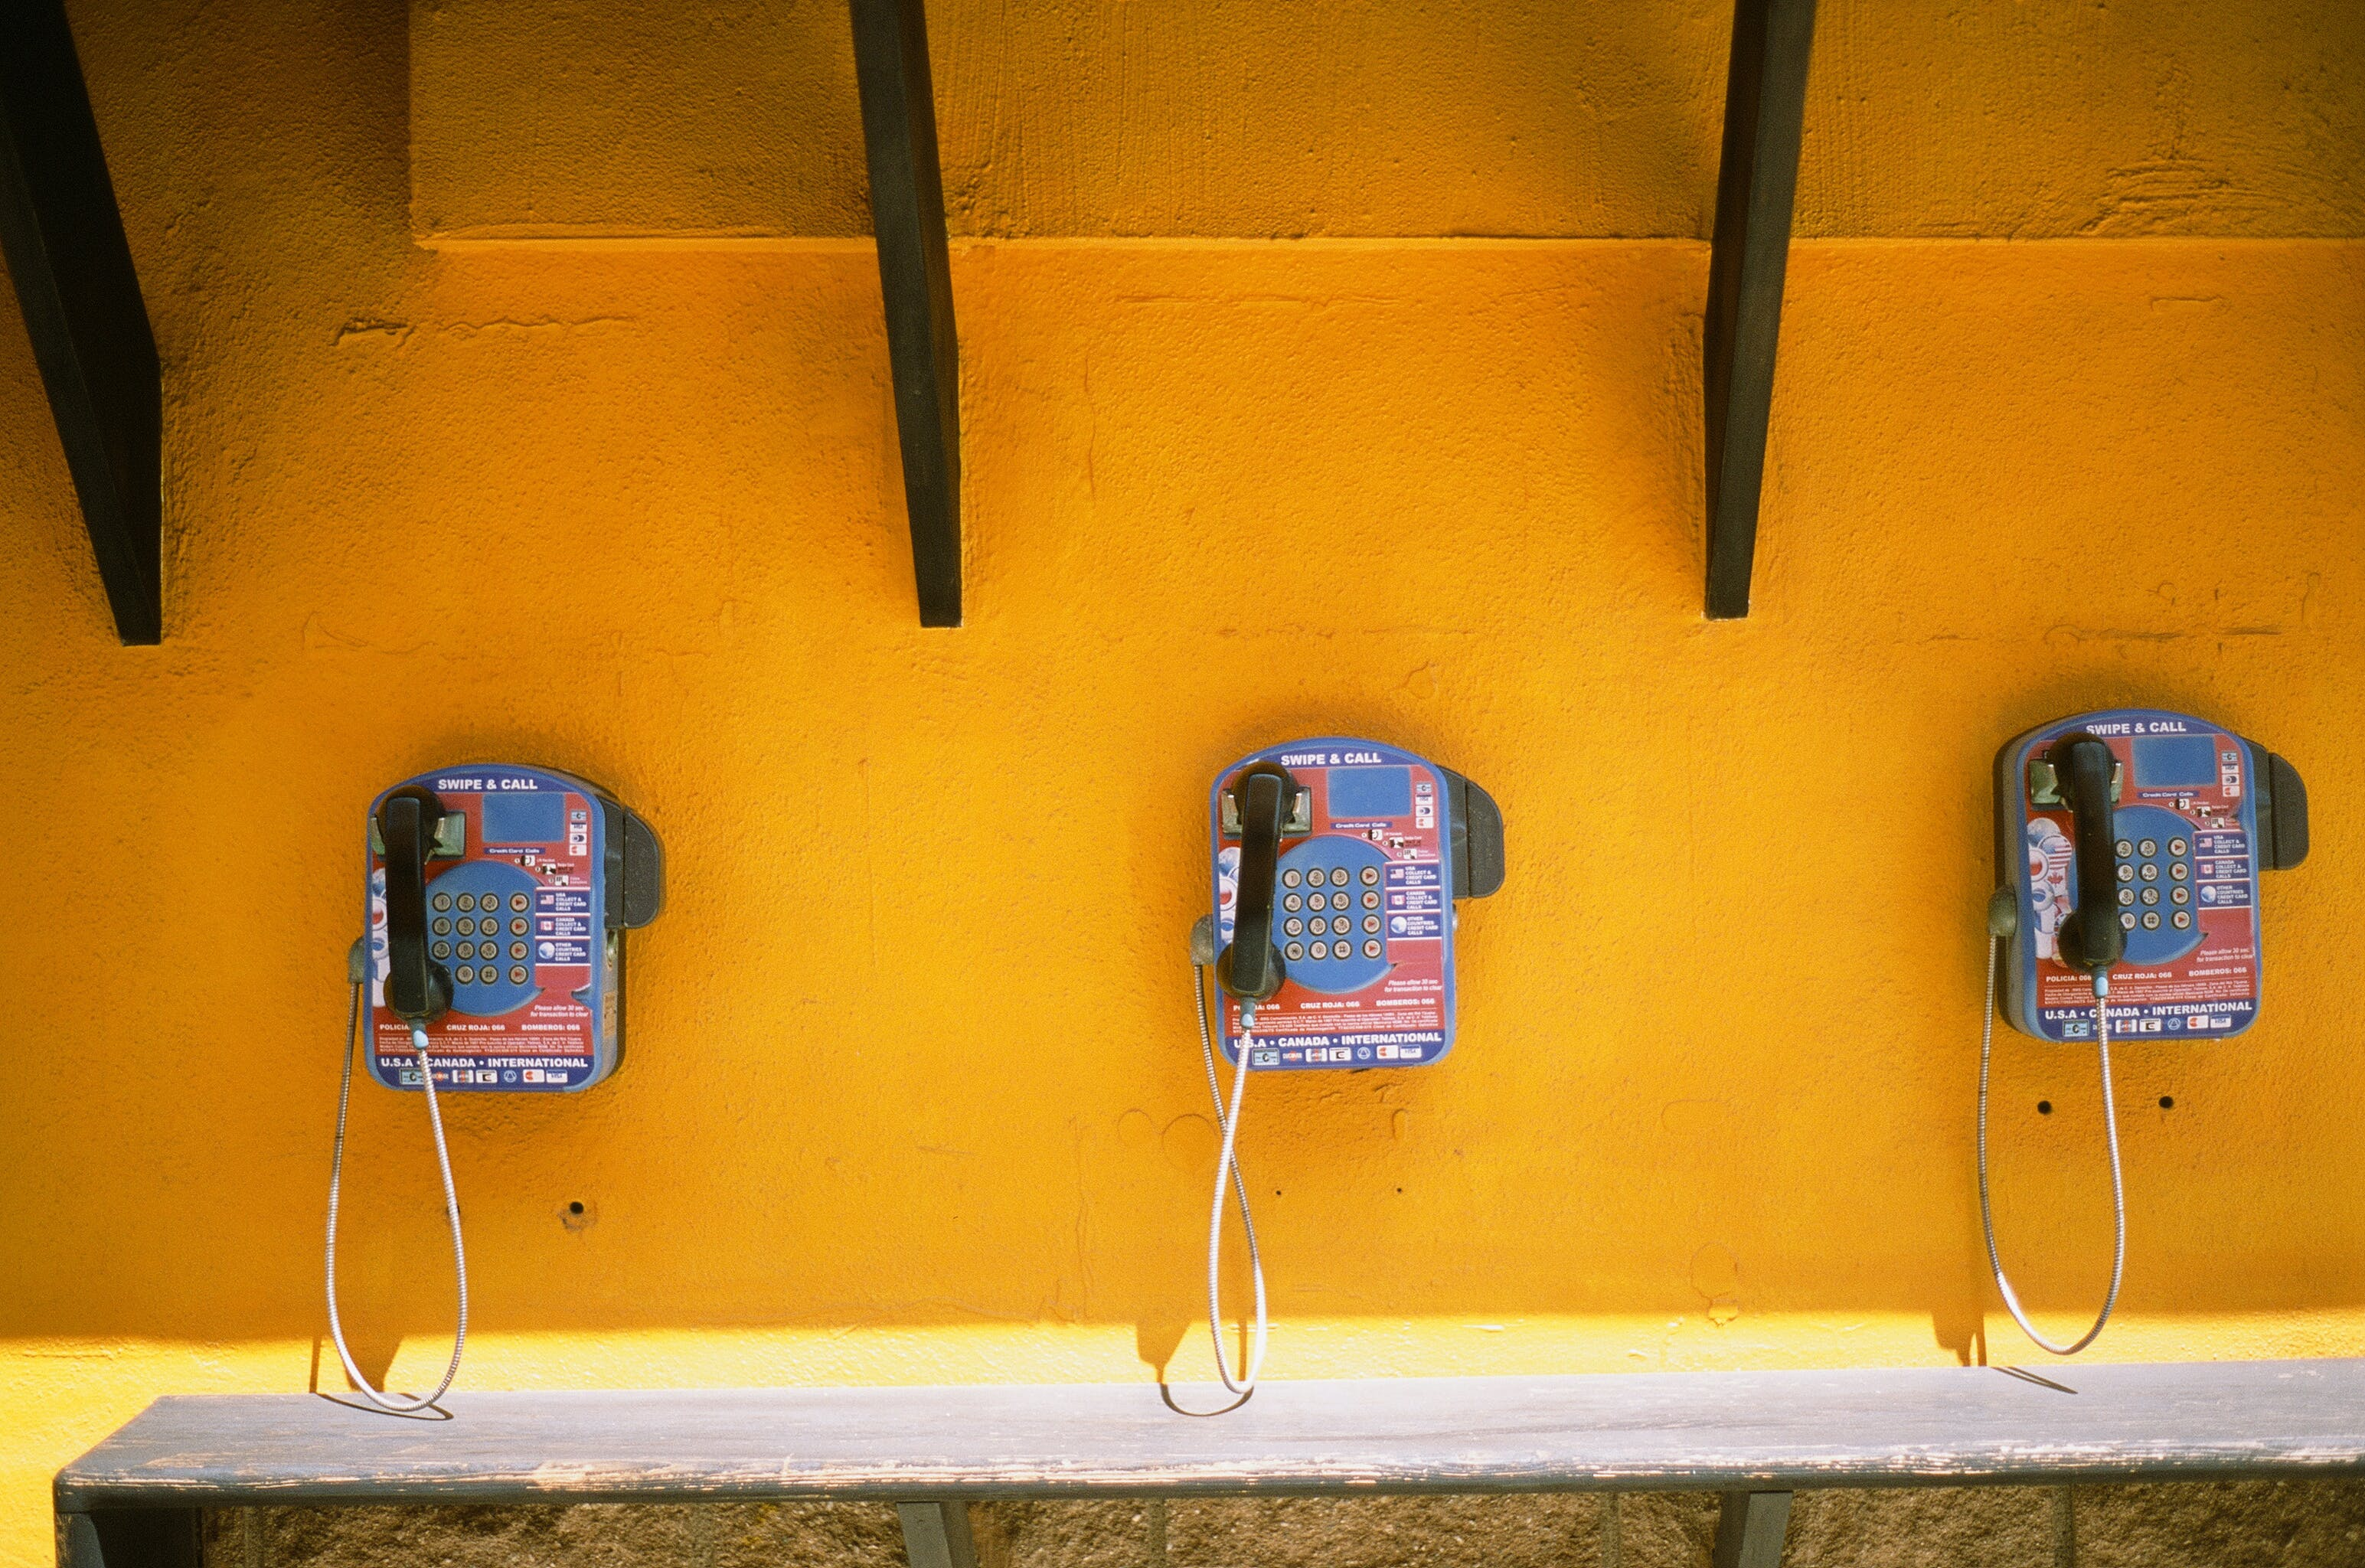 Free stock photo of call box, phone box, phones, public